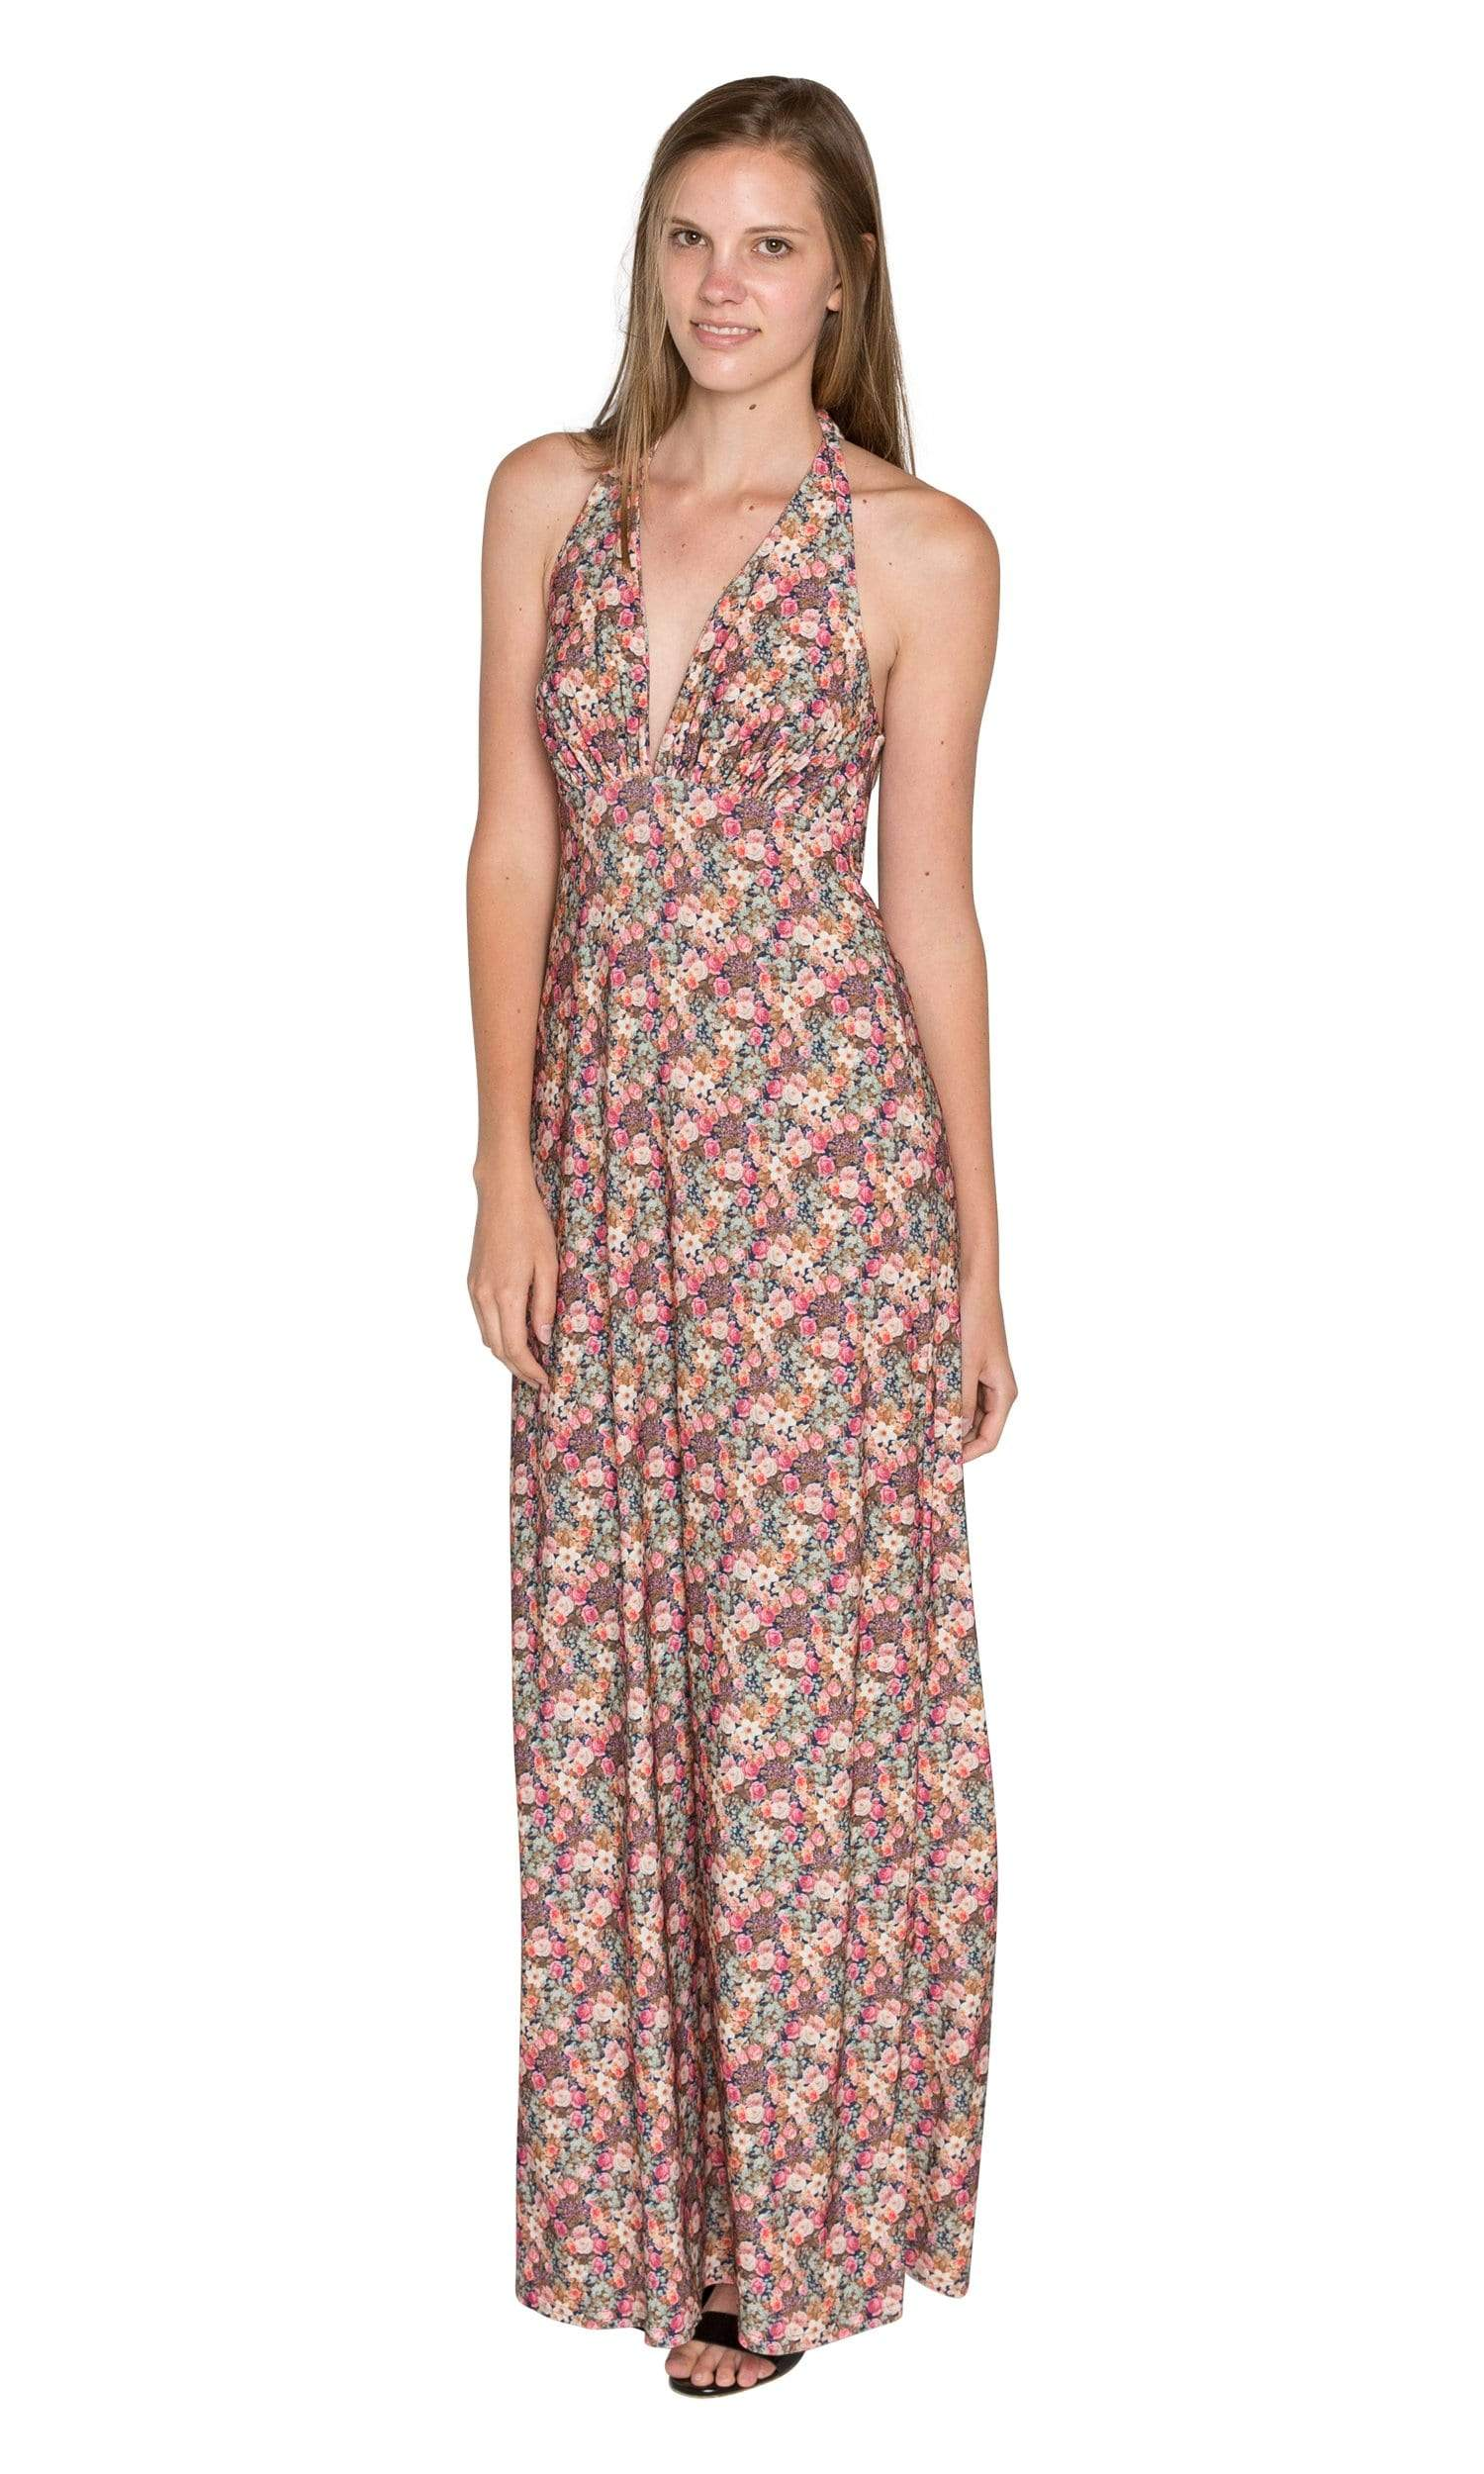 Viereck Ticketyboo Maxi Halter Dress